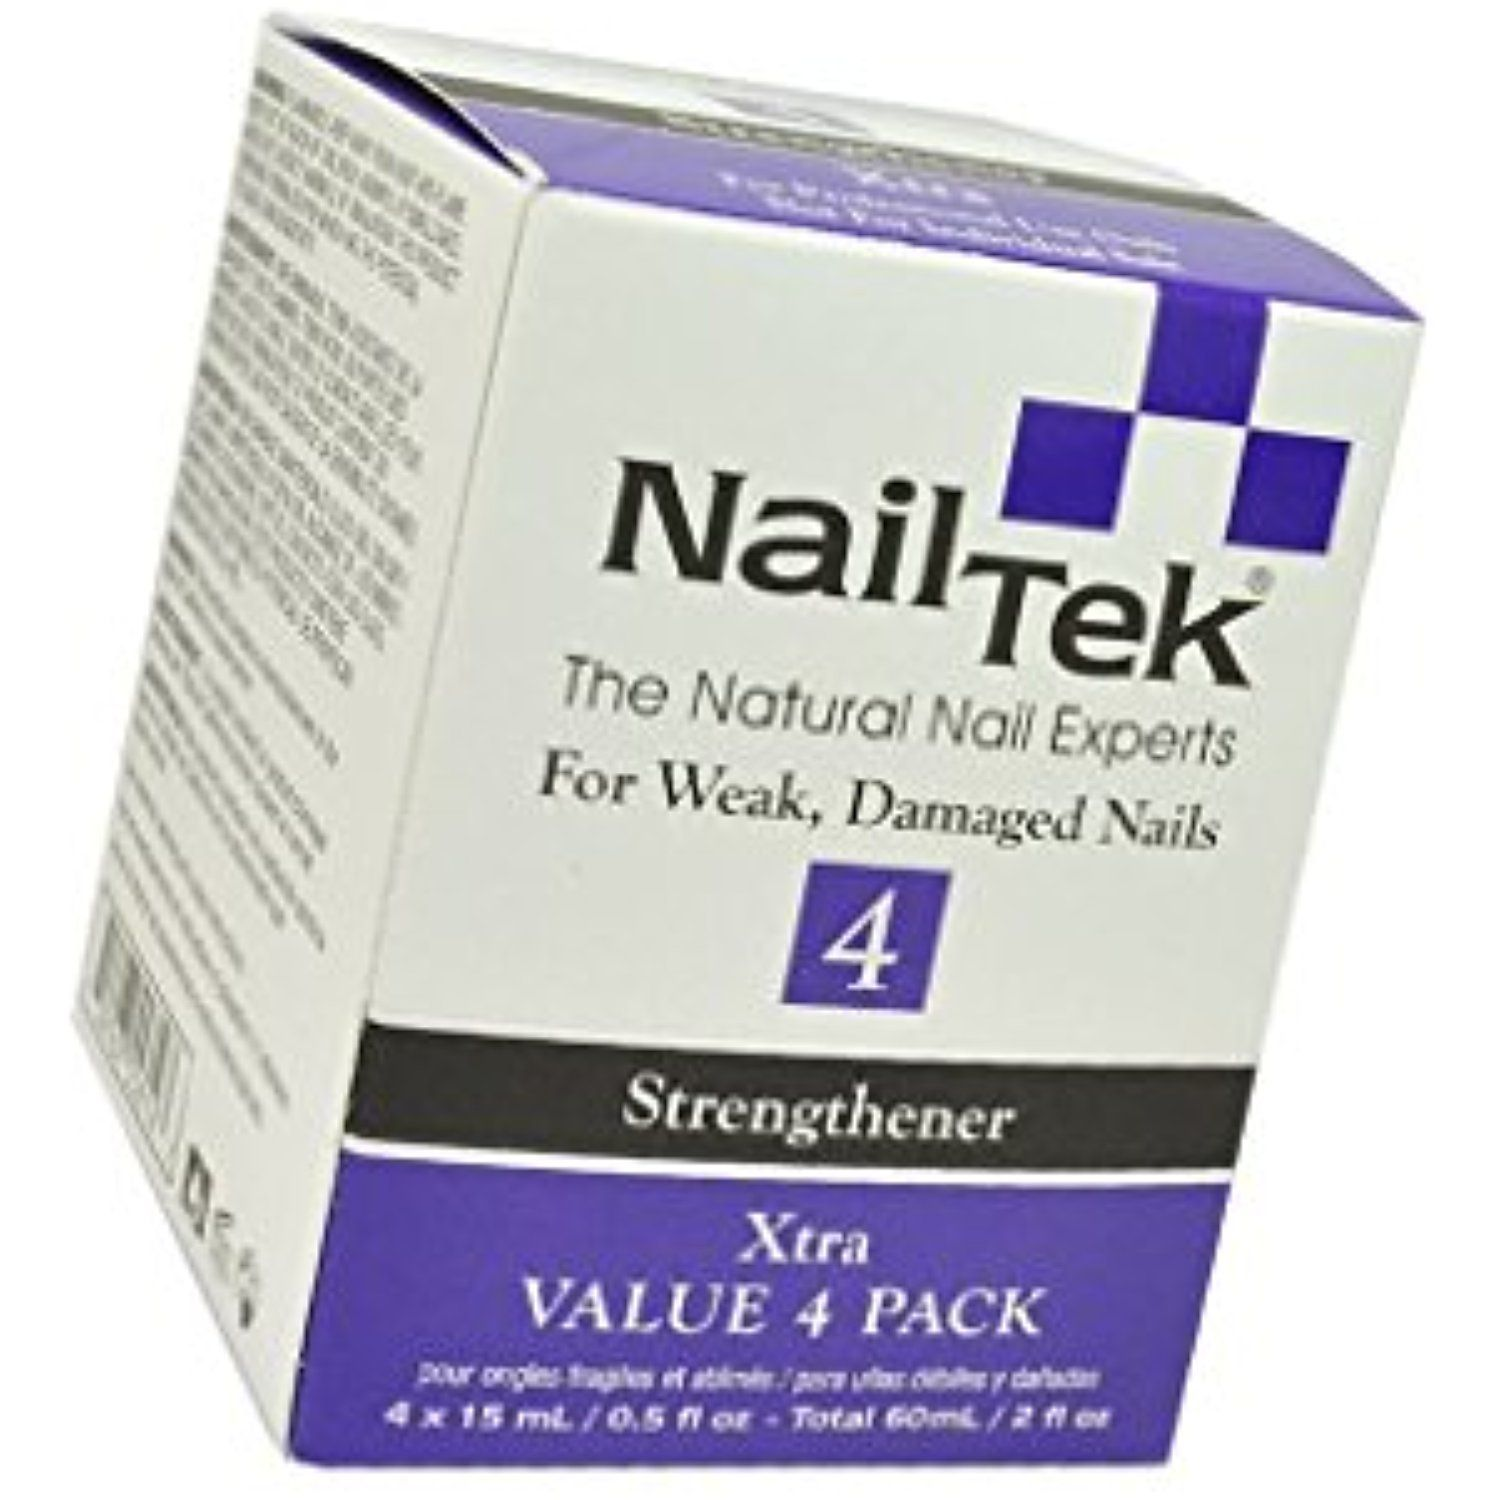 Pro Pack Nail Tek Xtra 4 For Weak and Damaged Nails, resistant nails ...